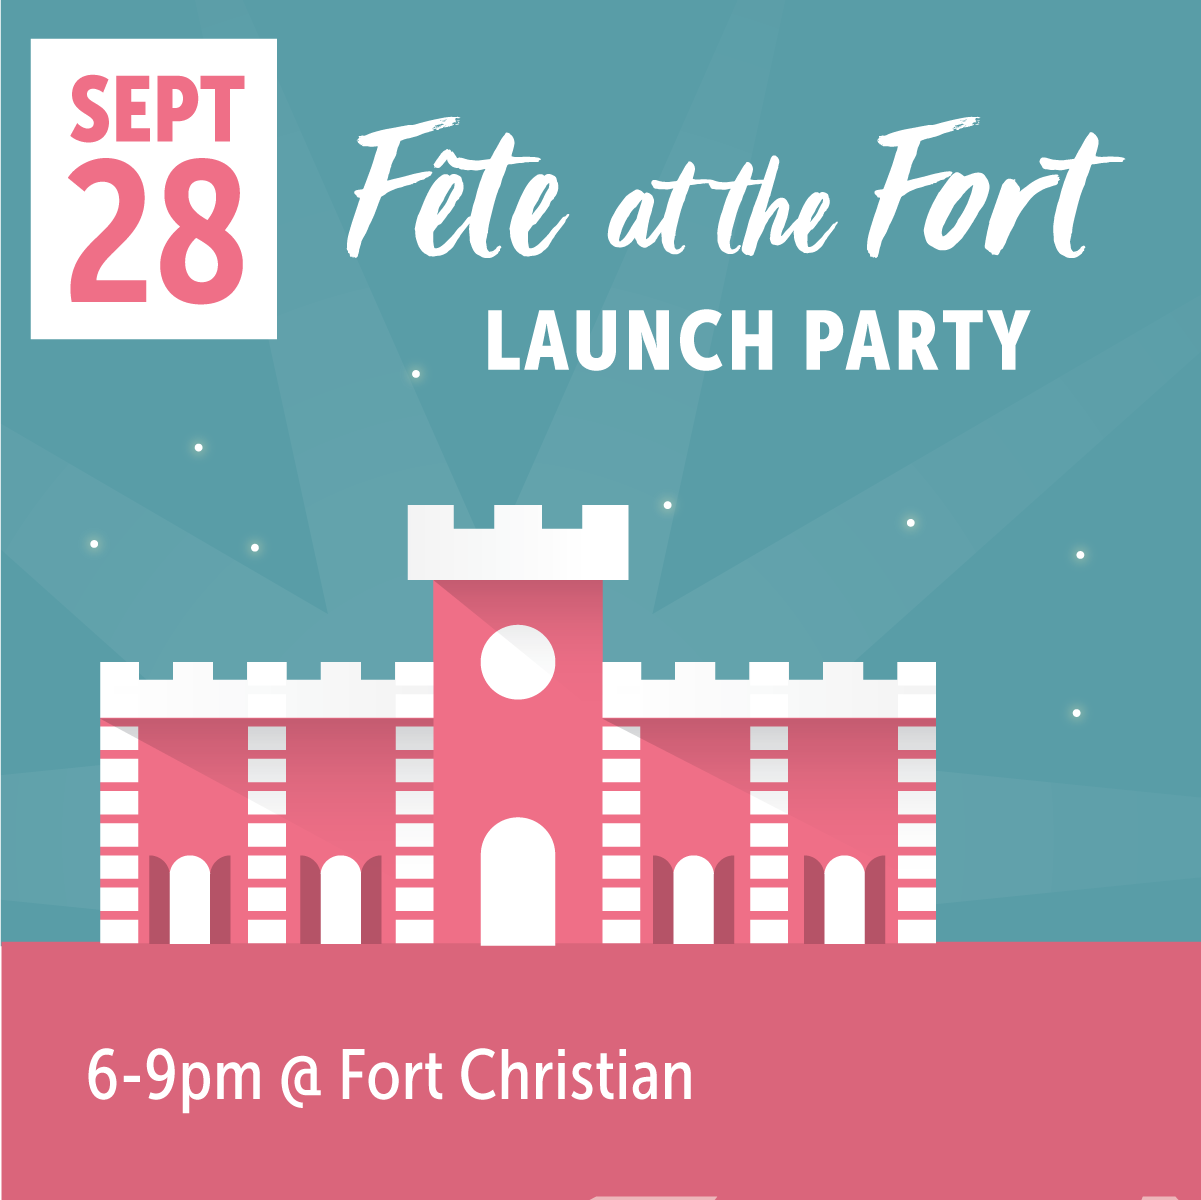 Fete at the Fort